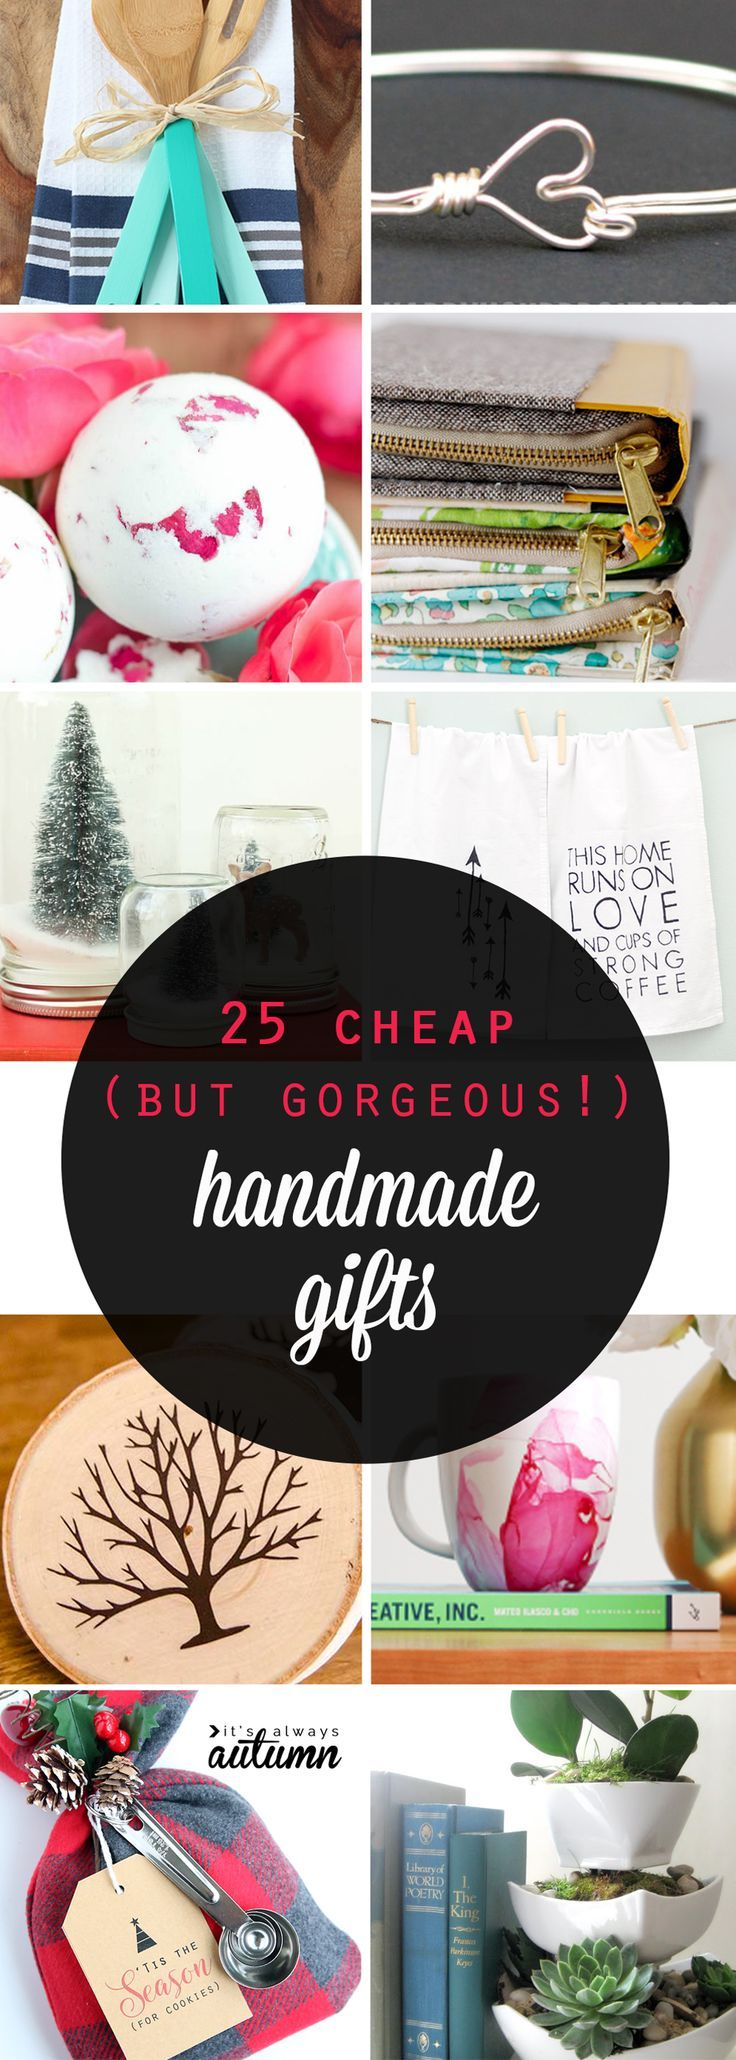 25 Cheap But Gorgeous Diy Gift Ideas Christmas